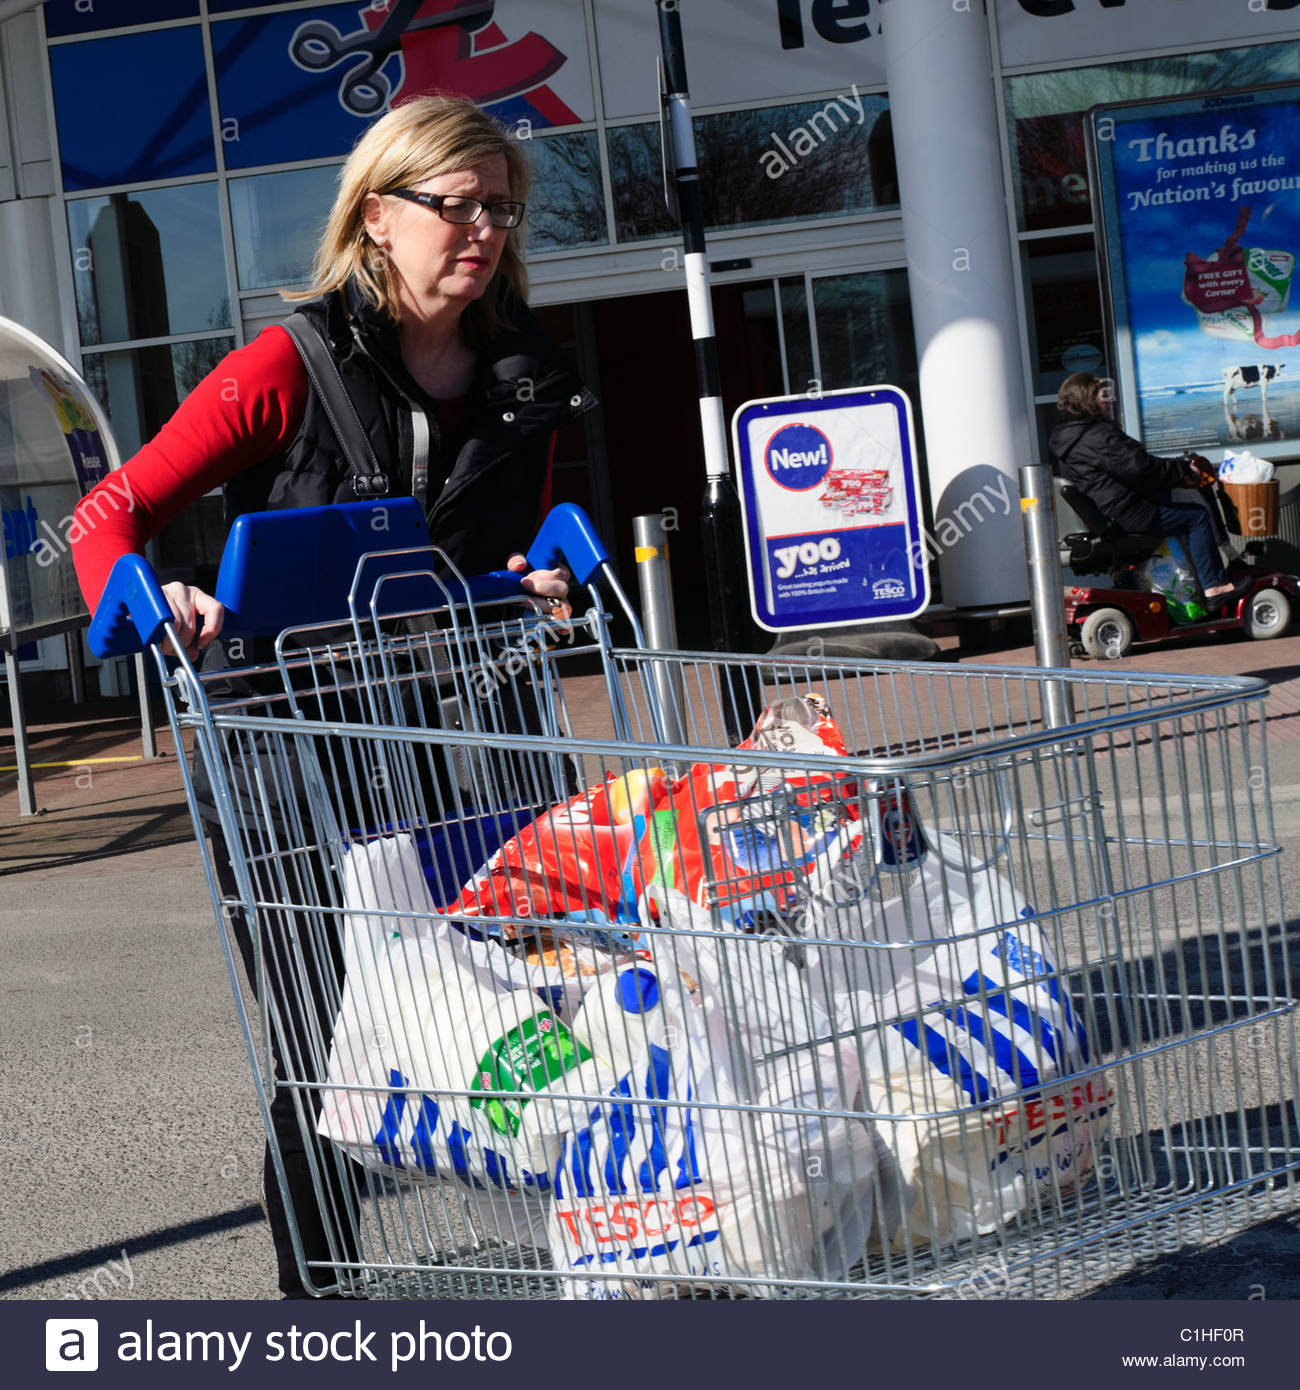 Woman pushing a shopping trolley full of Tesco's carrier bags, UK. Front view adult woman with Tesco shopping - Stock Image